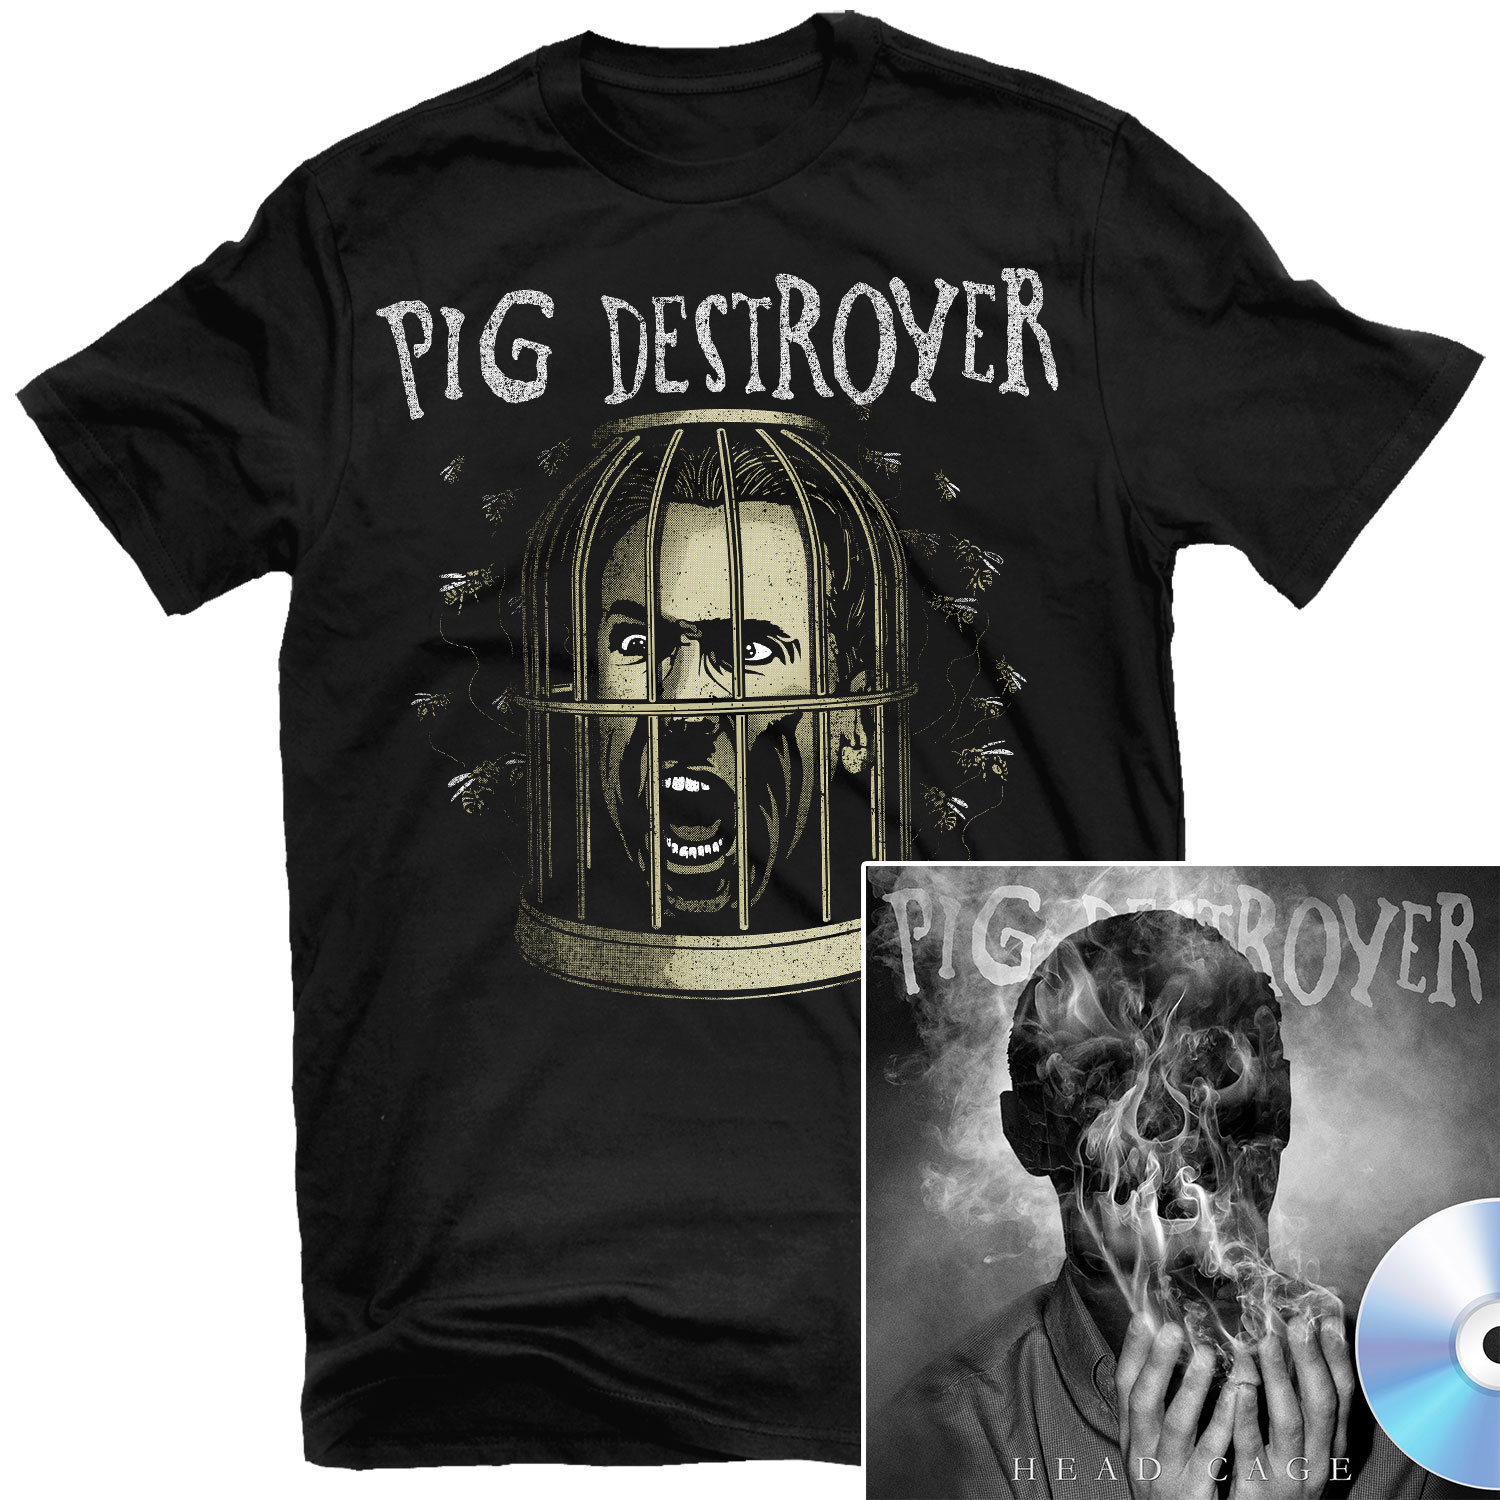 Cage Head T Shirt + Head Cage CD Bundle